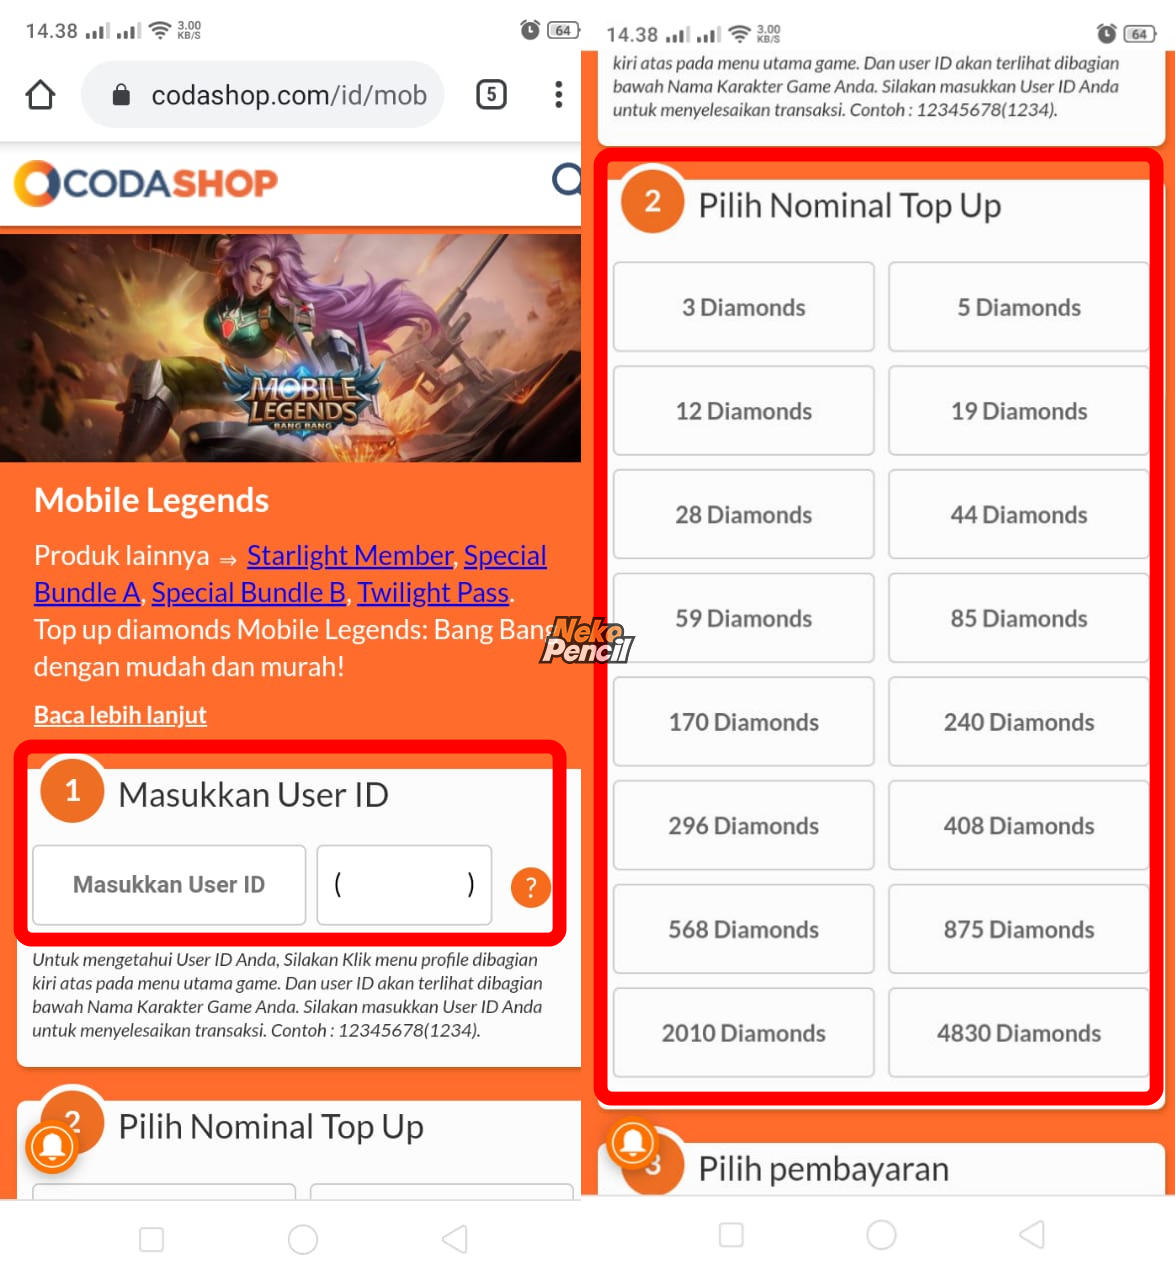 pilih nominal topup mobile legends codashop